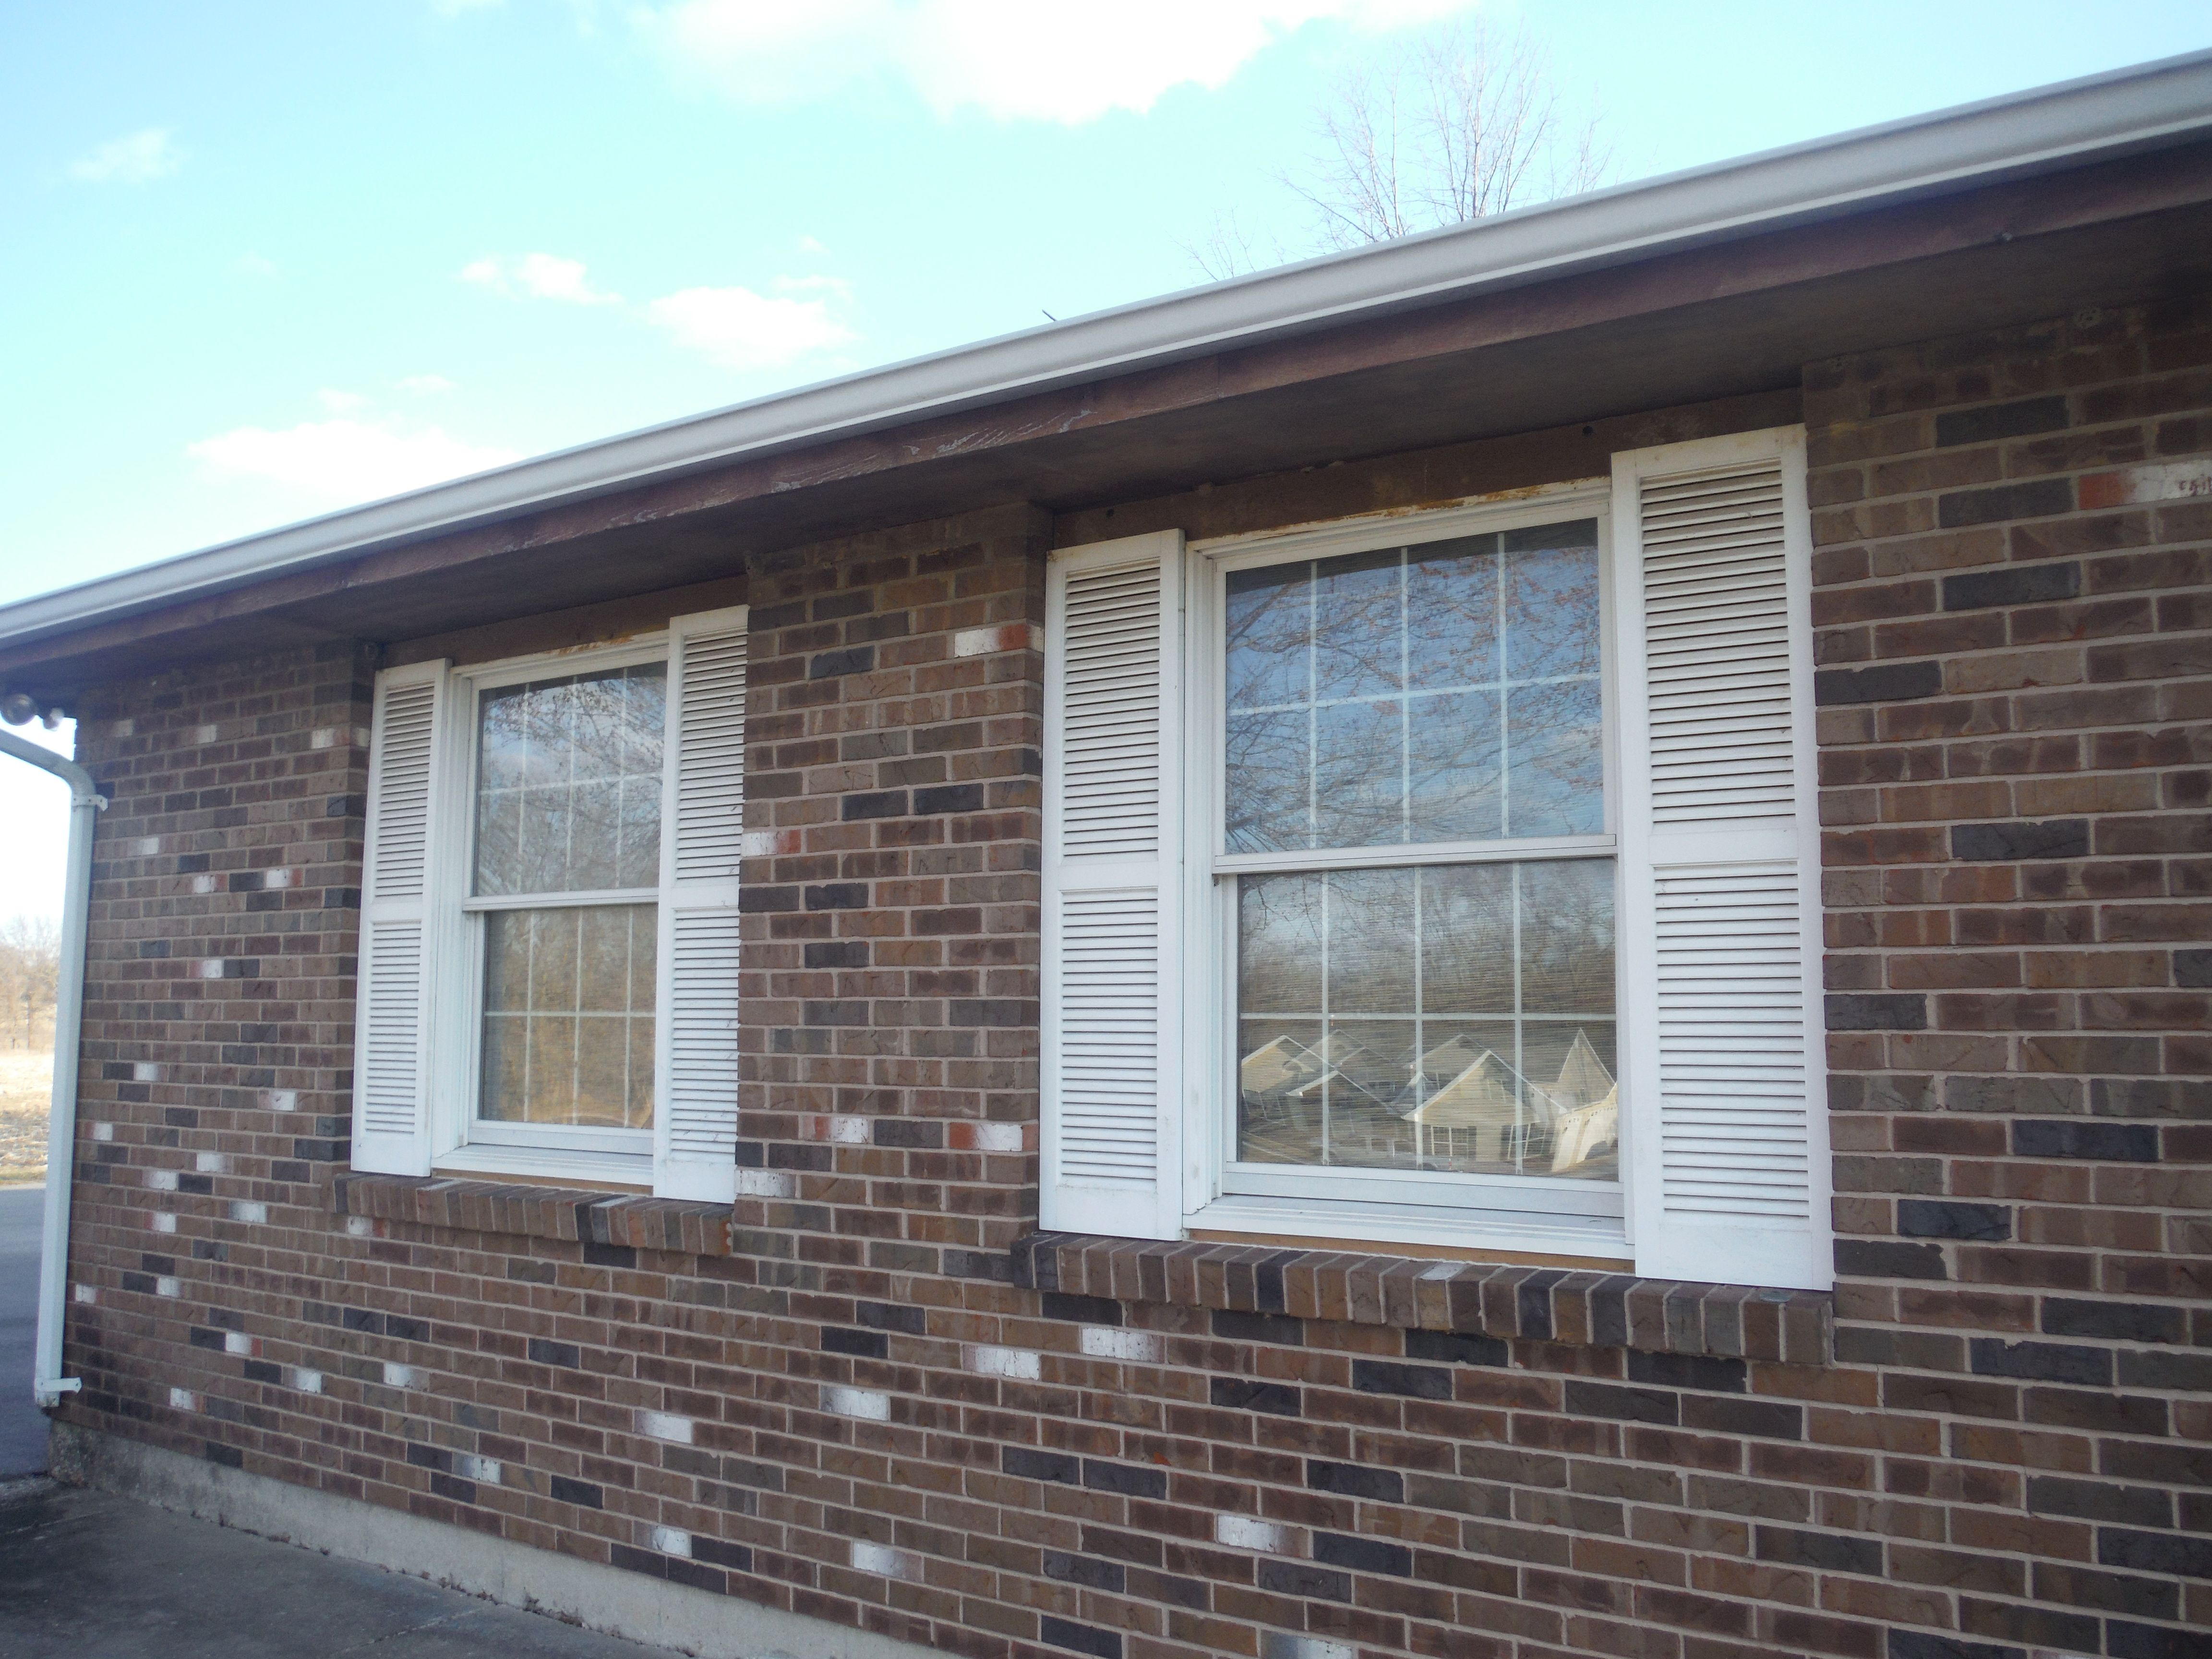 Above exterior window decor  before picture of the window shutters window shutters today are